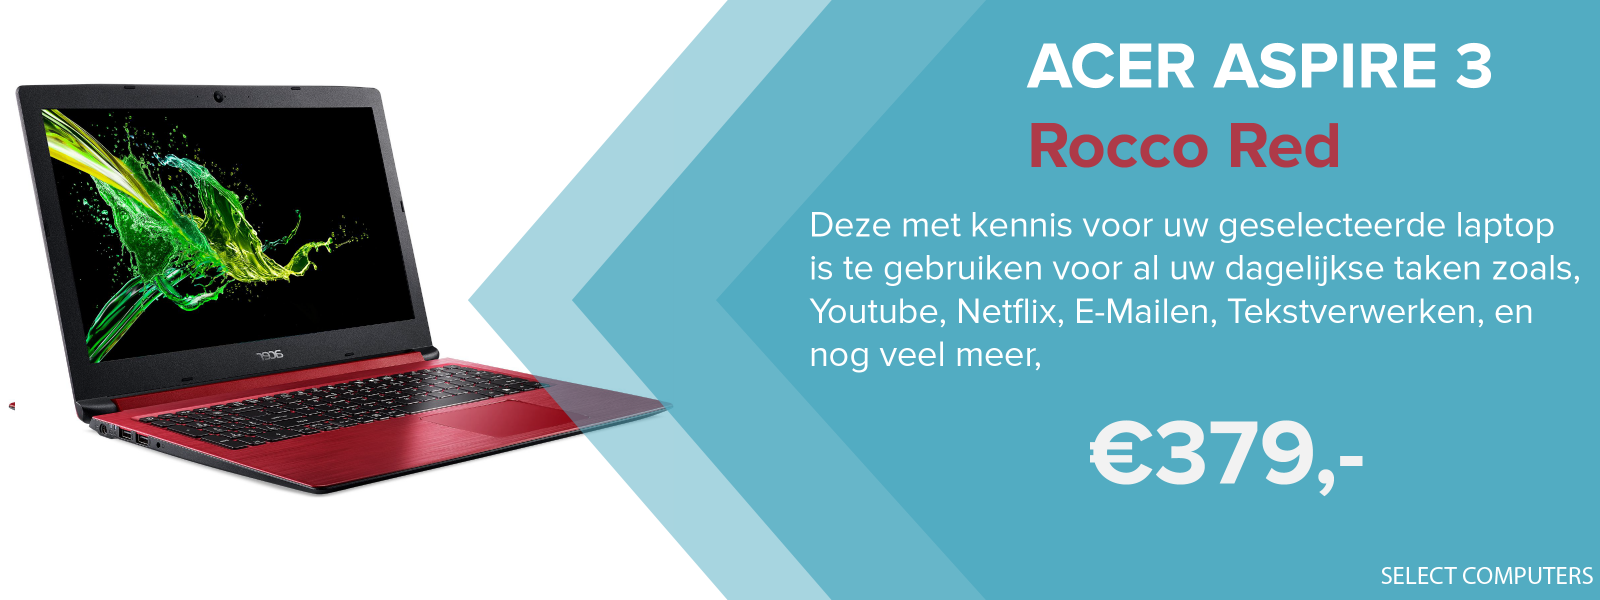 Acer Aspire Rocco Red